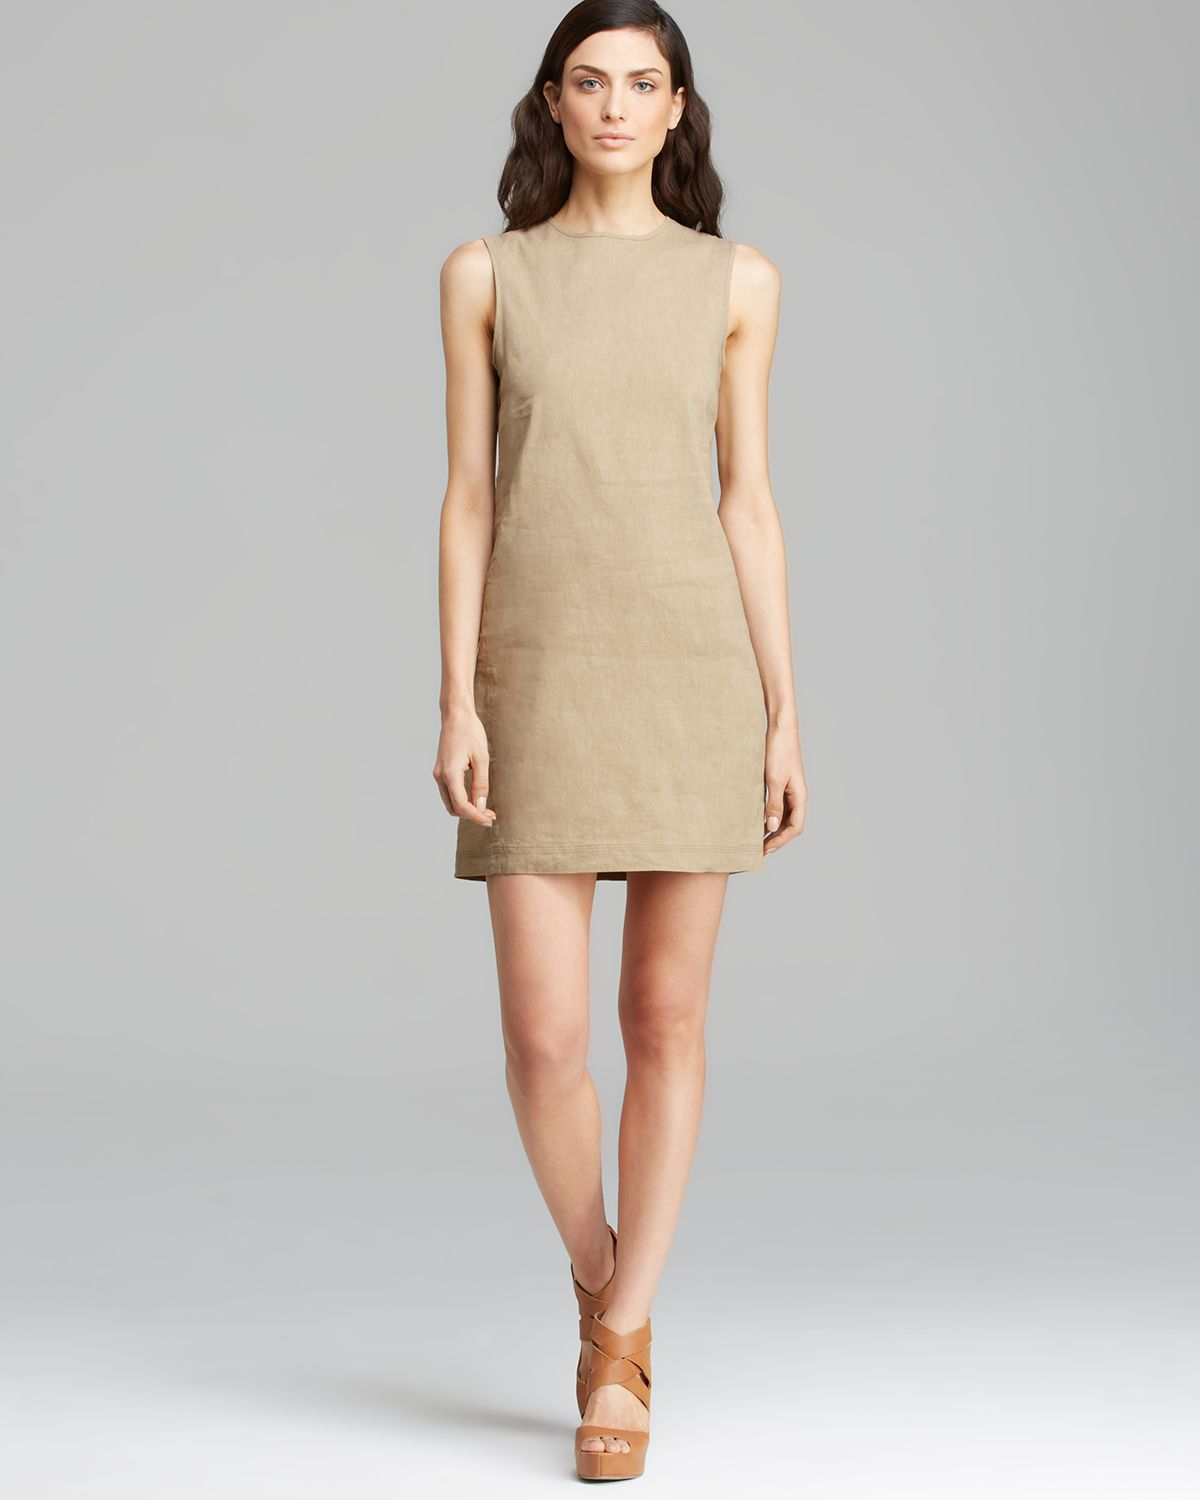 b7ae14c38e65 Lyst - Theory Dress Adraya Crunch in Natural